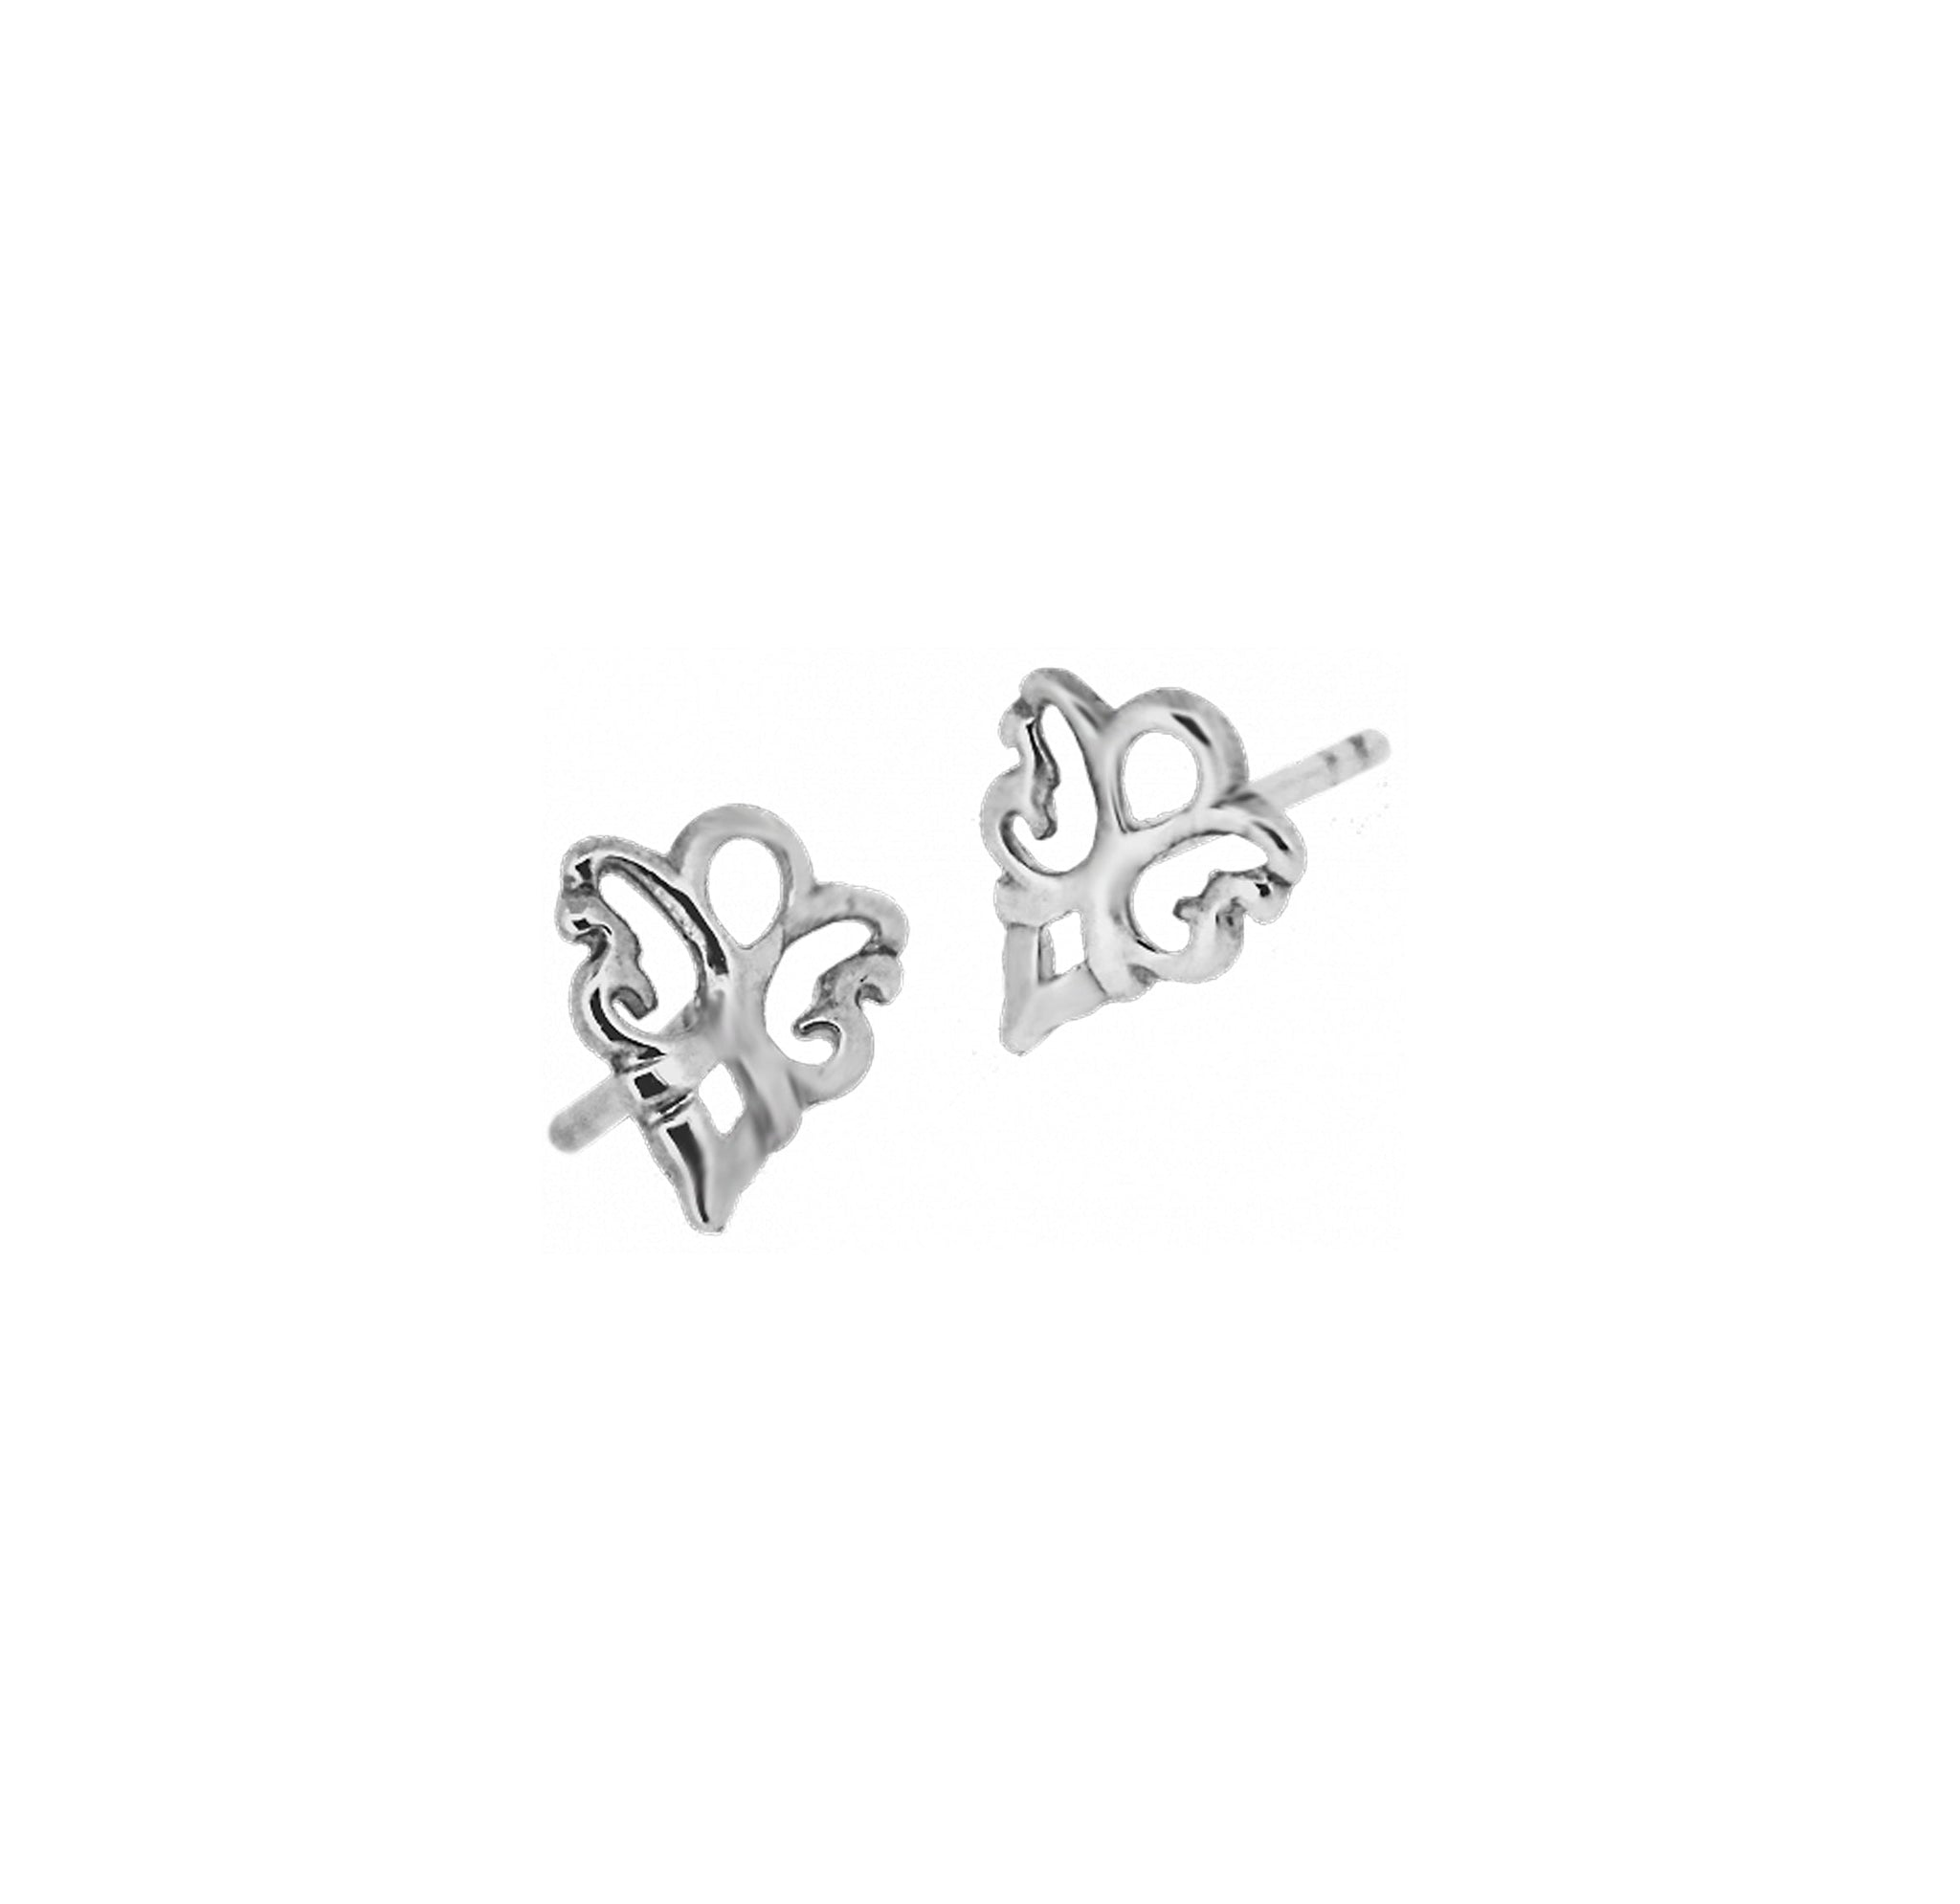 Earlings - Ravior Jewels